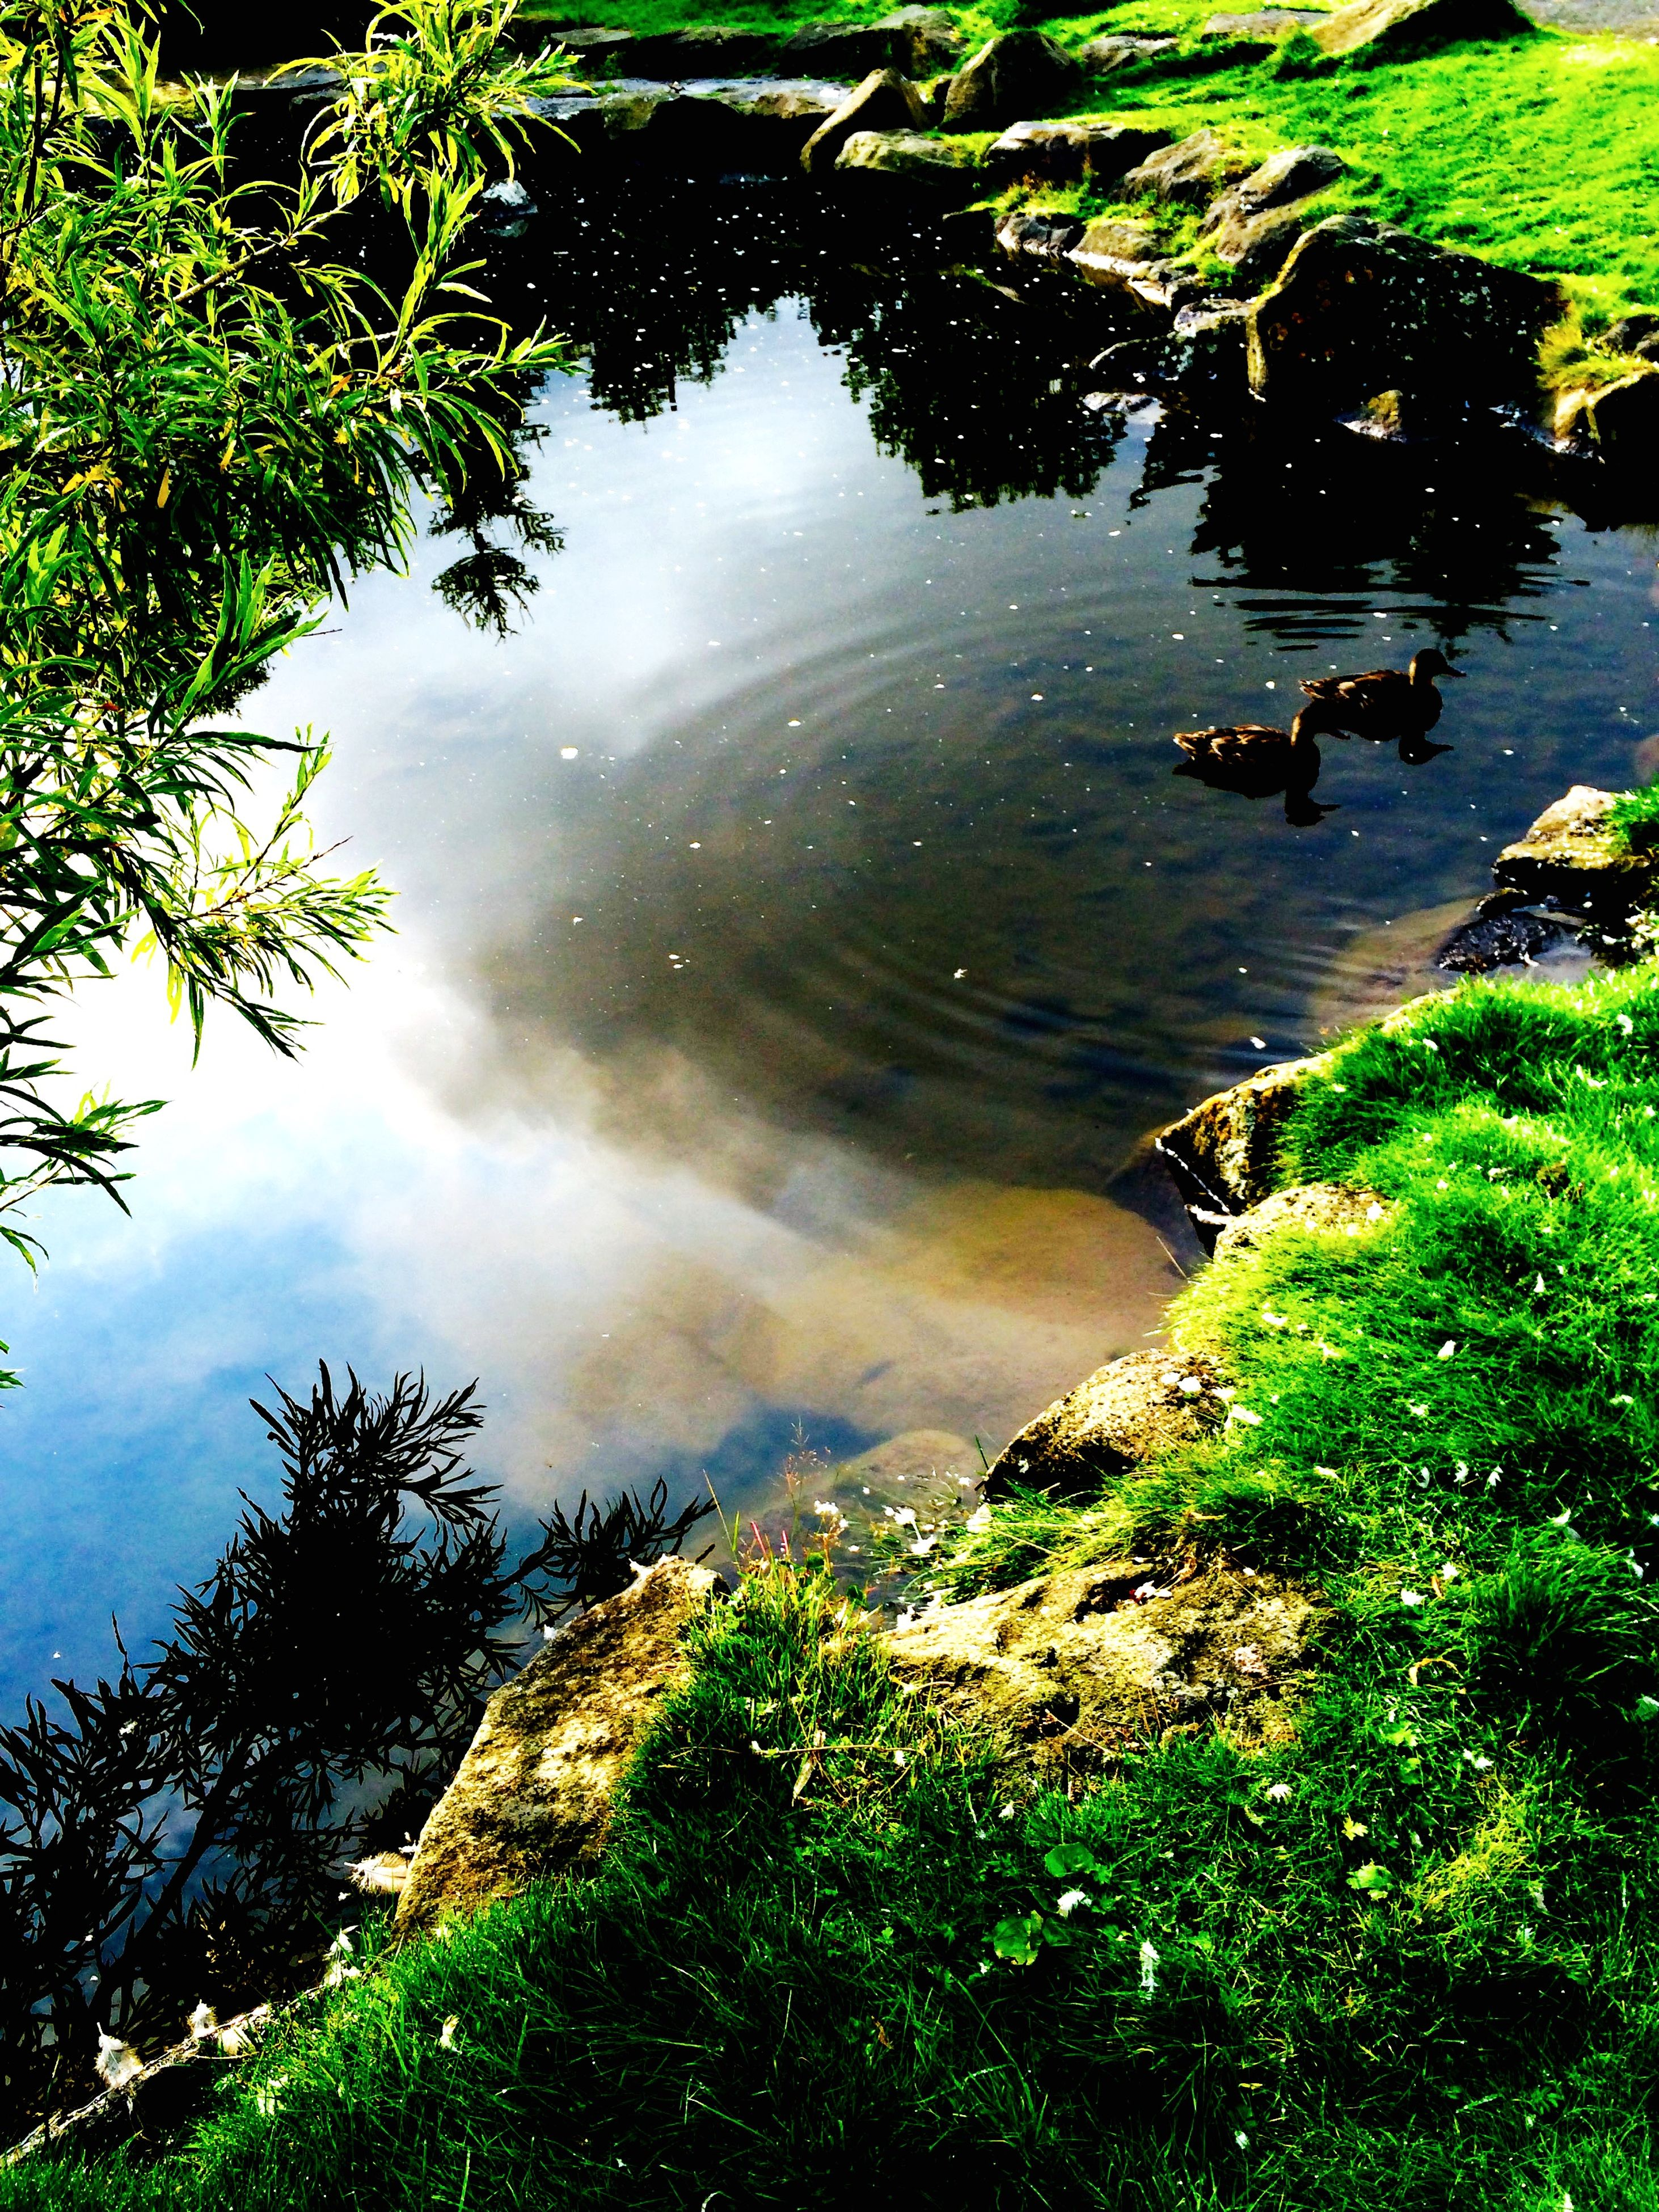 water, tranquility, tranquil scene, lake, scenics, high angle view, reflection, beauty in nature, green color, nature, tree, plant, river, growth, idyllic, grass, day, non-urban scene, outdoors, no people